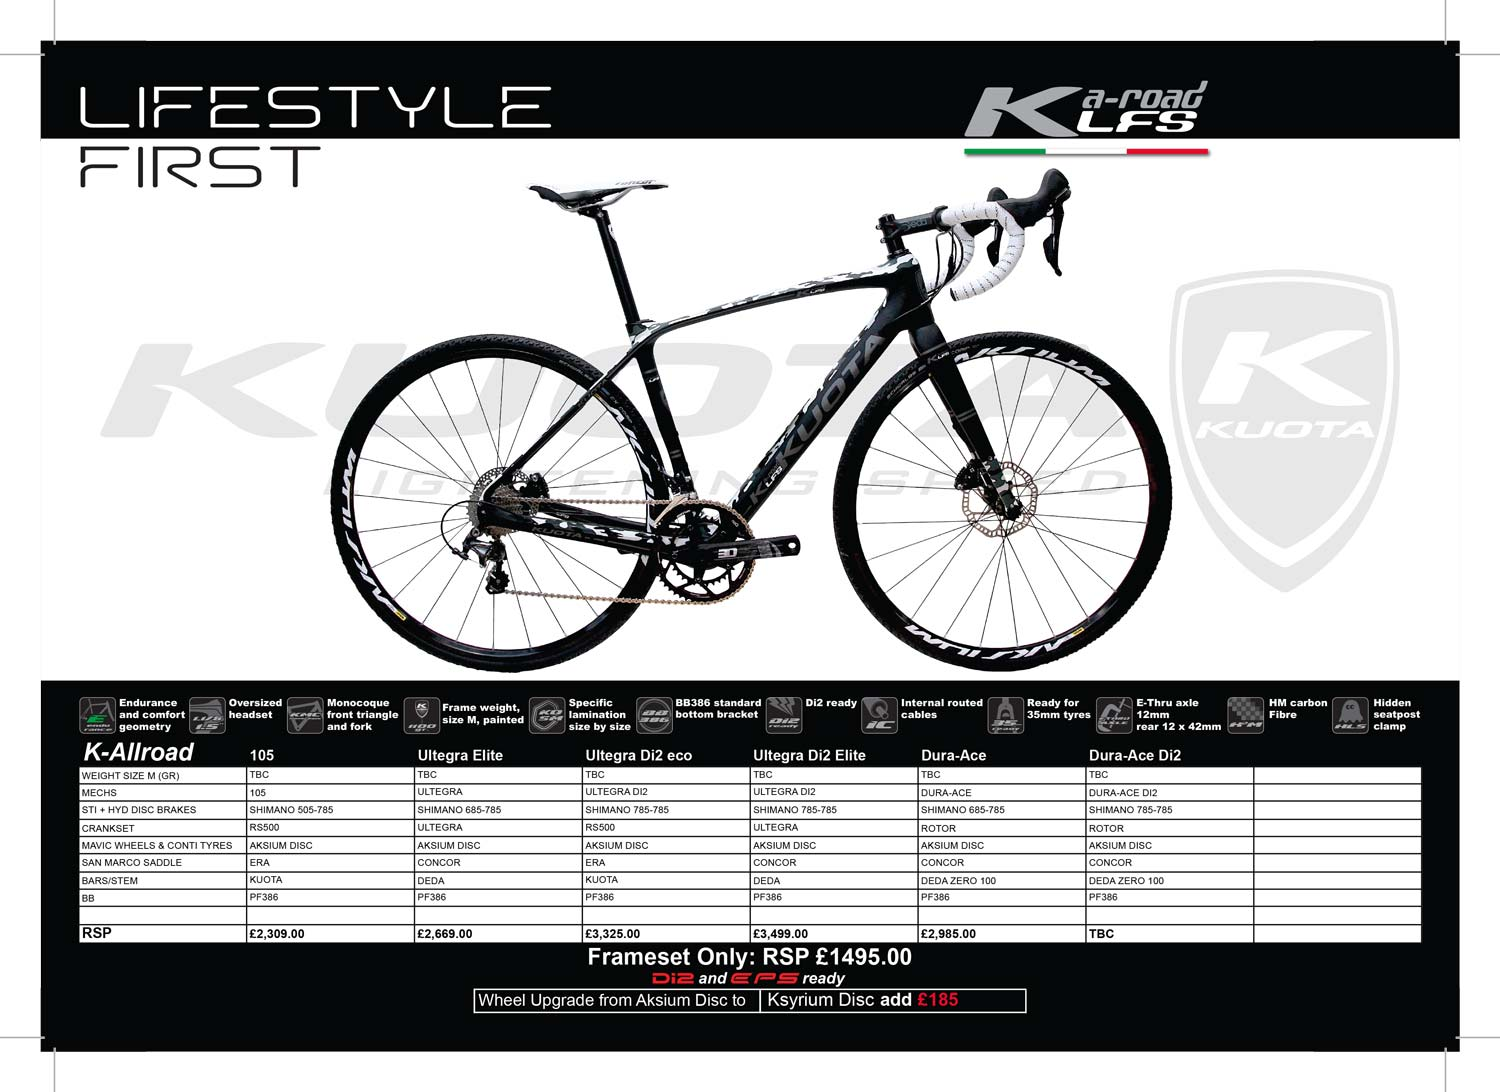 Kuota K-Allroad specs and prices